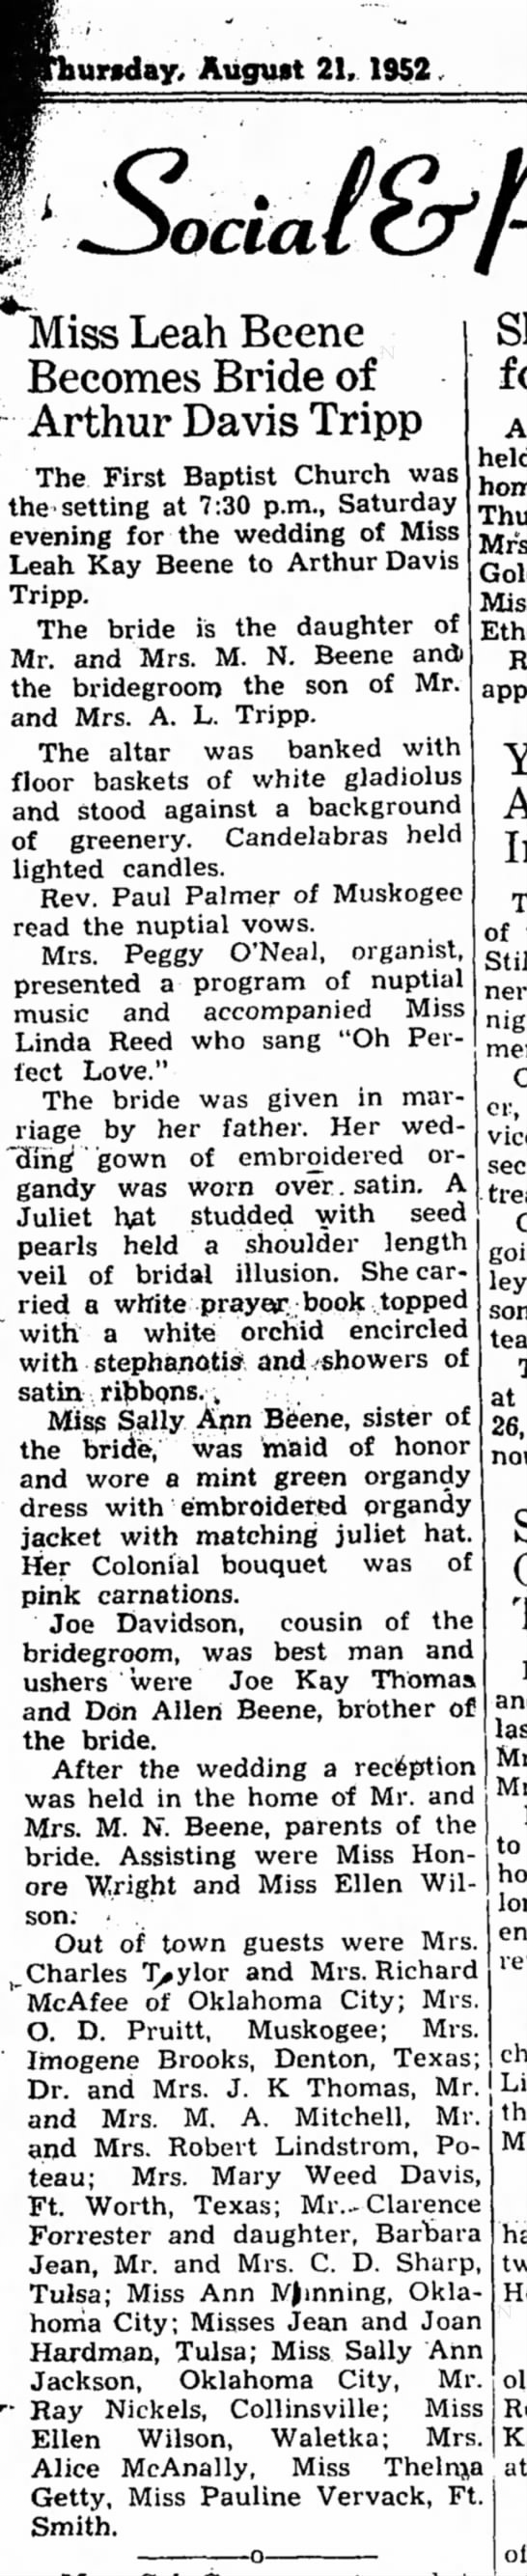 Beene Tripp Weding Stilwell Dem-Journ 21 Aug 1952 p 5 -